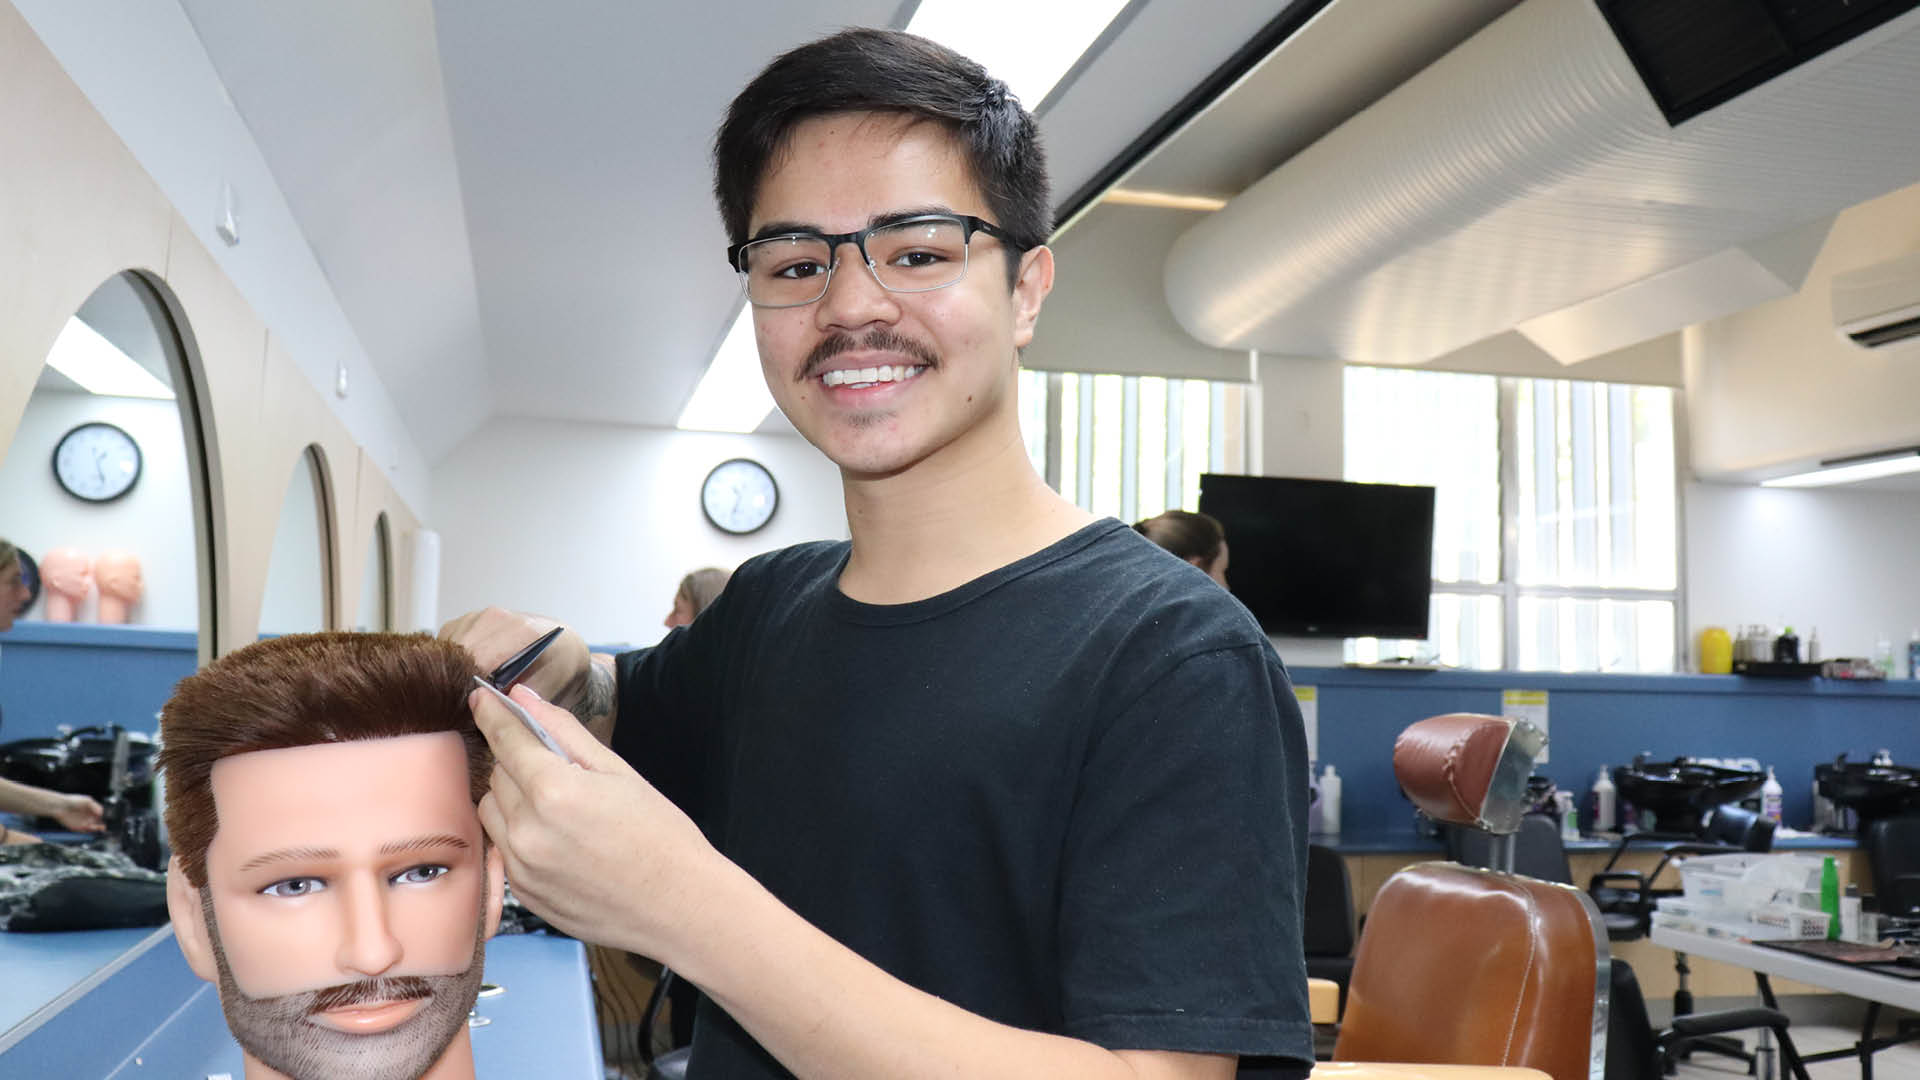 blog-free-apprenticeship-for-young-barber-feature.jpg